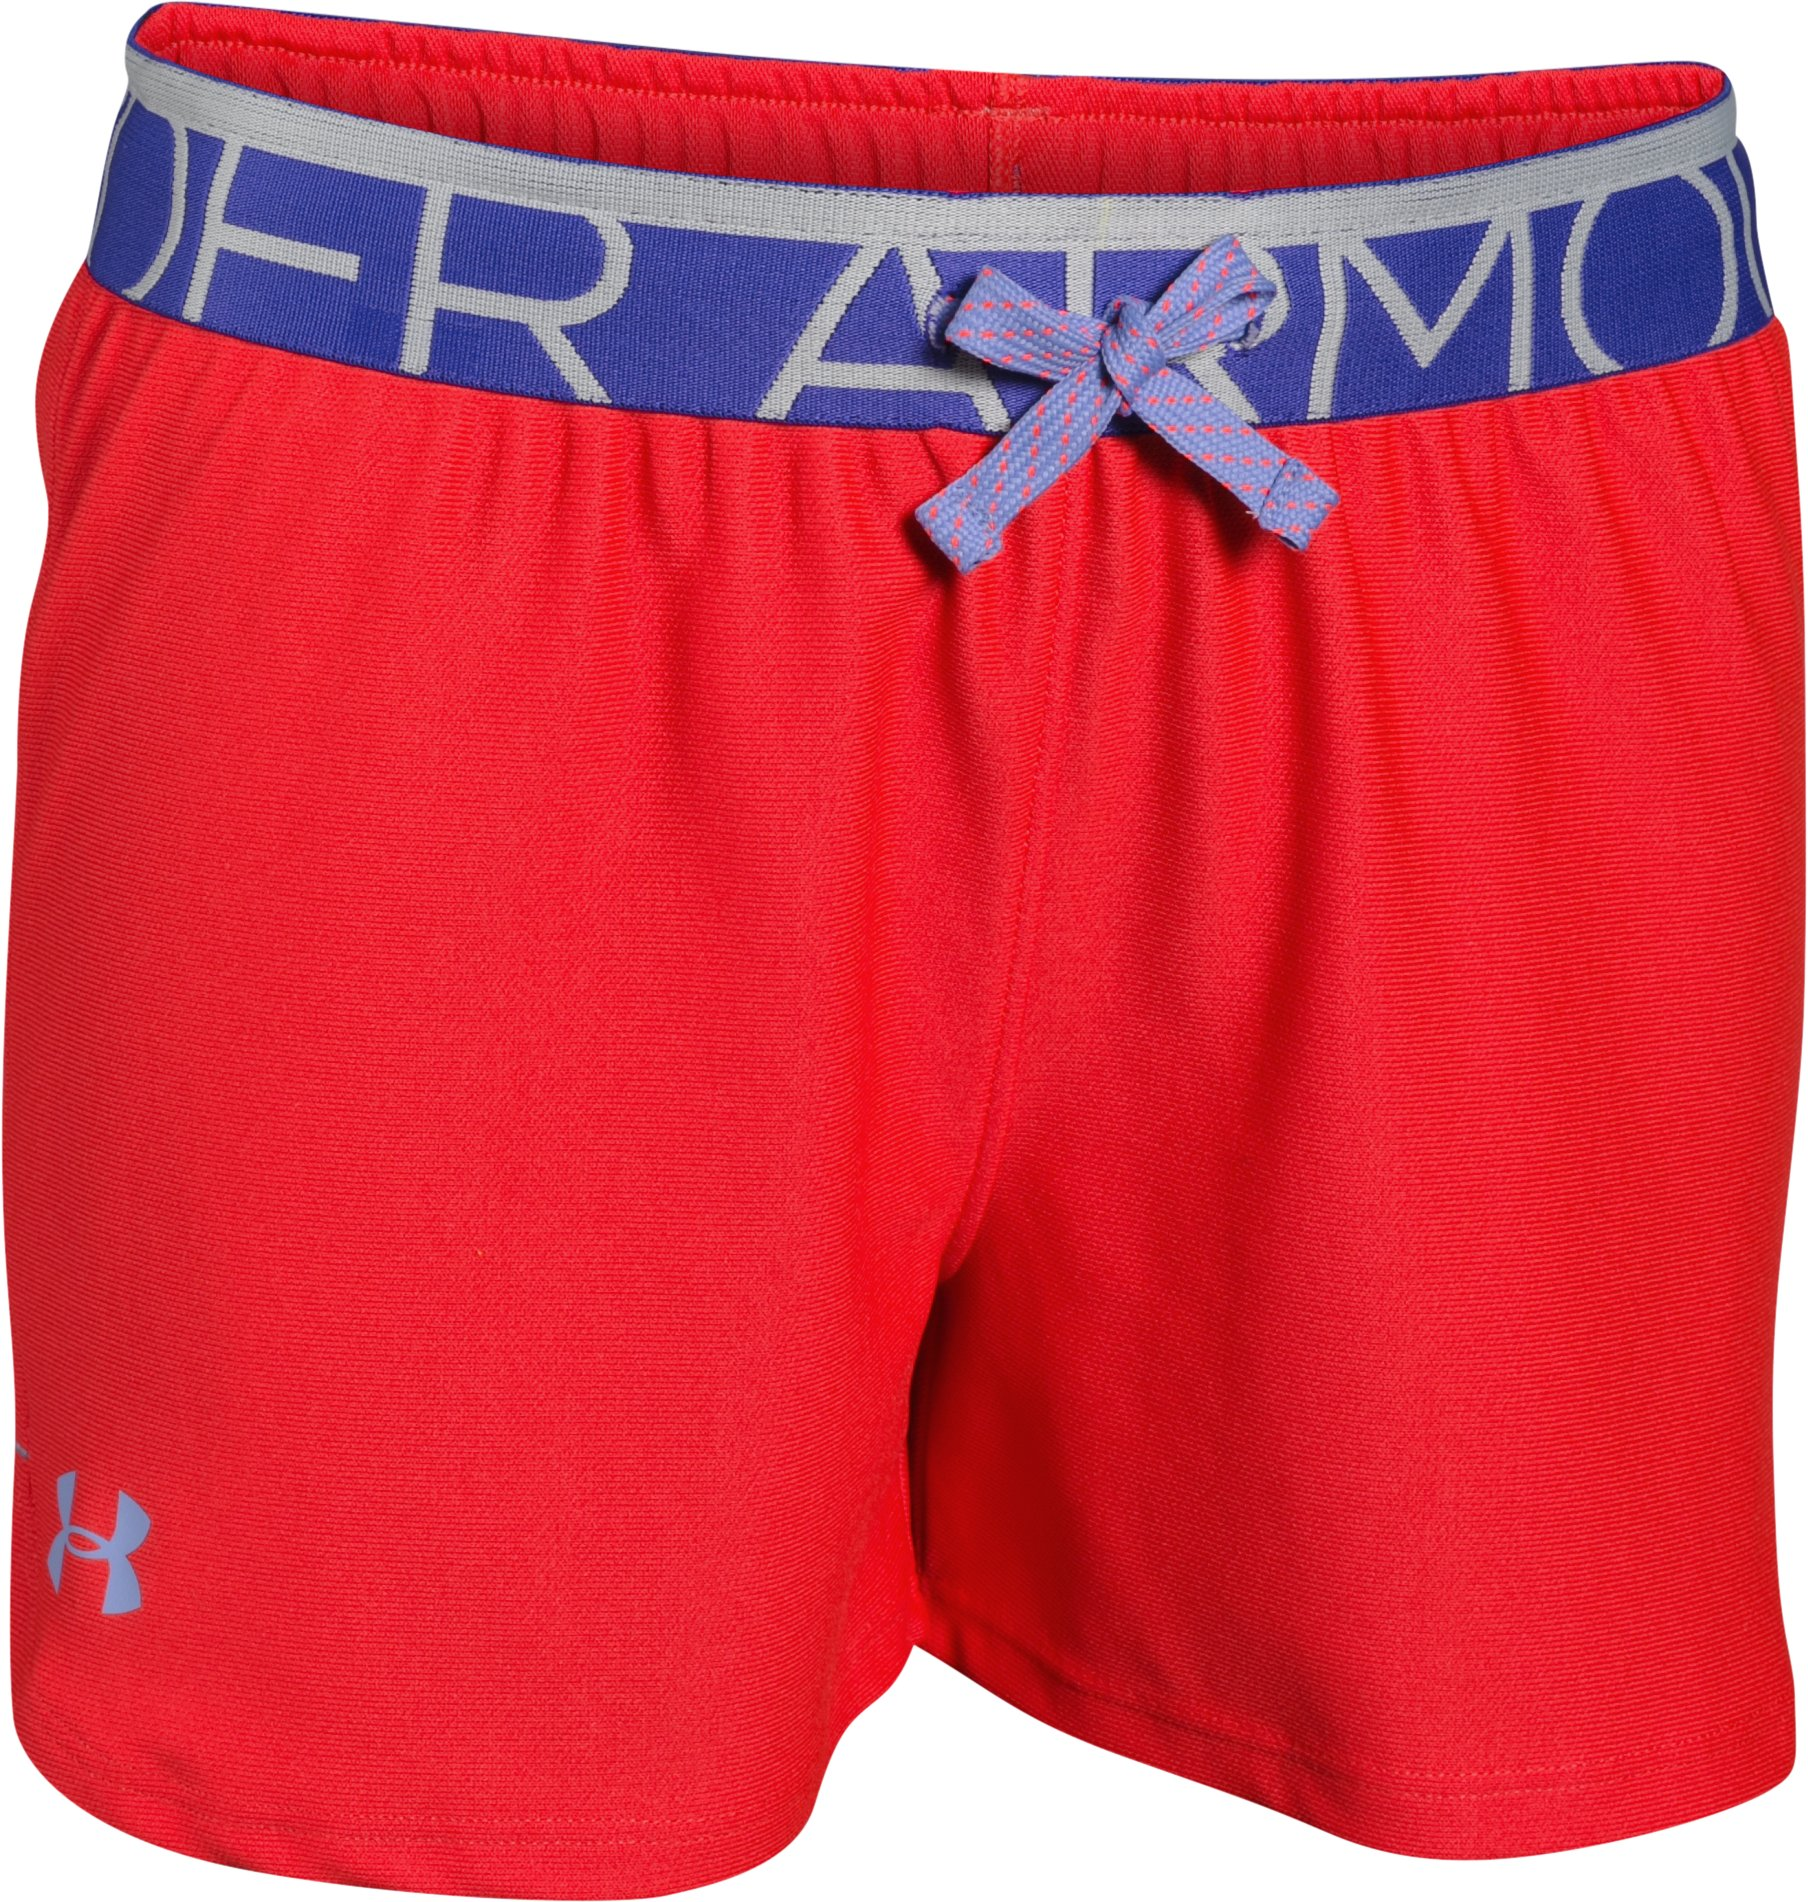 Girls' UA Play Up Shorts - 3 for $35, ROCKET RED